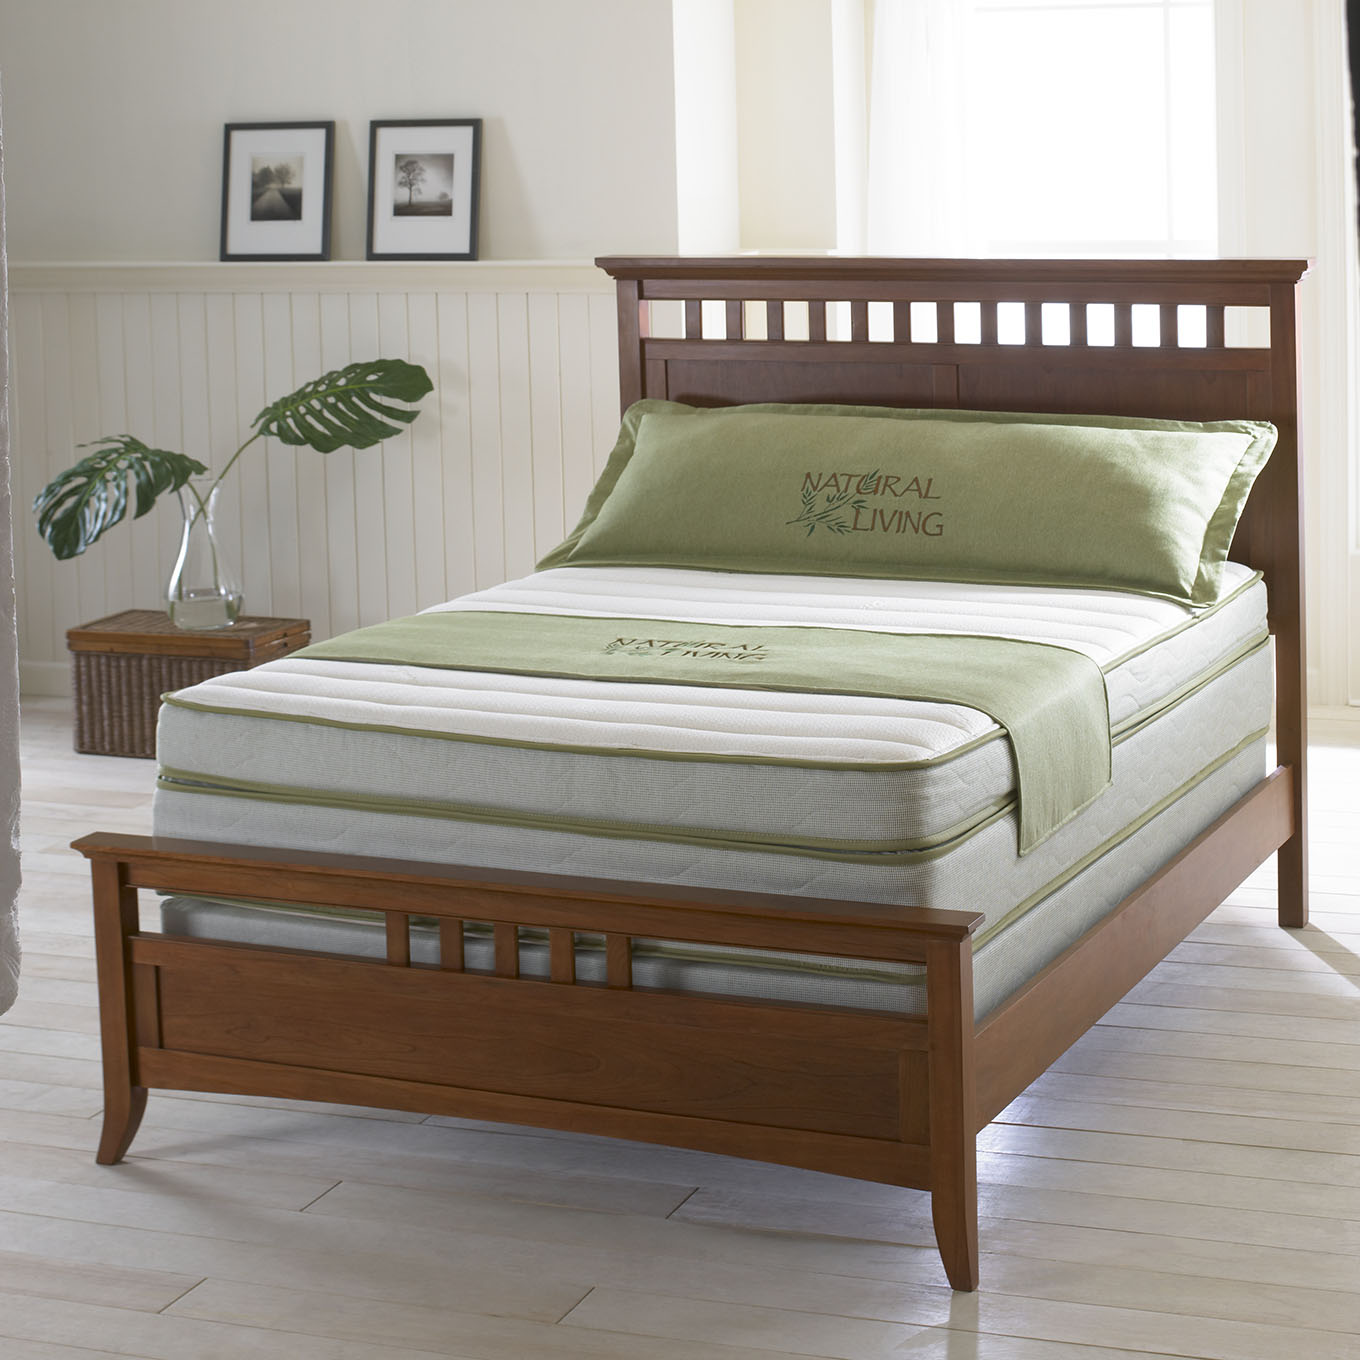 carolina mattress guild is located in north carolina and proud bed mattress sale. Black Bedroom Furniture Sets. Home Design Ideas